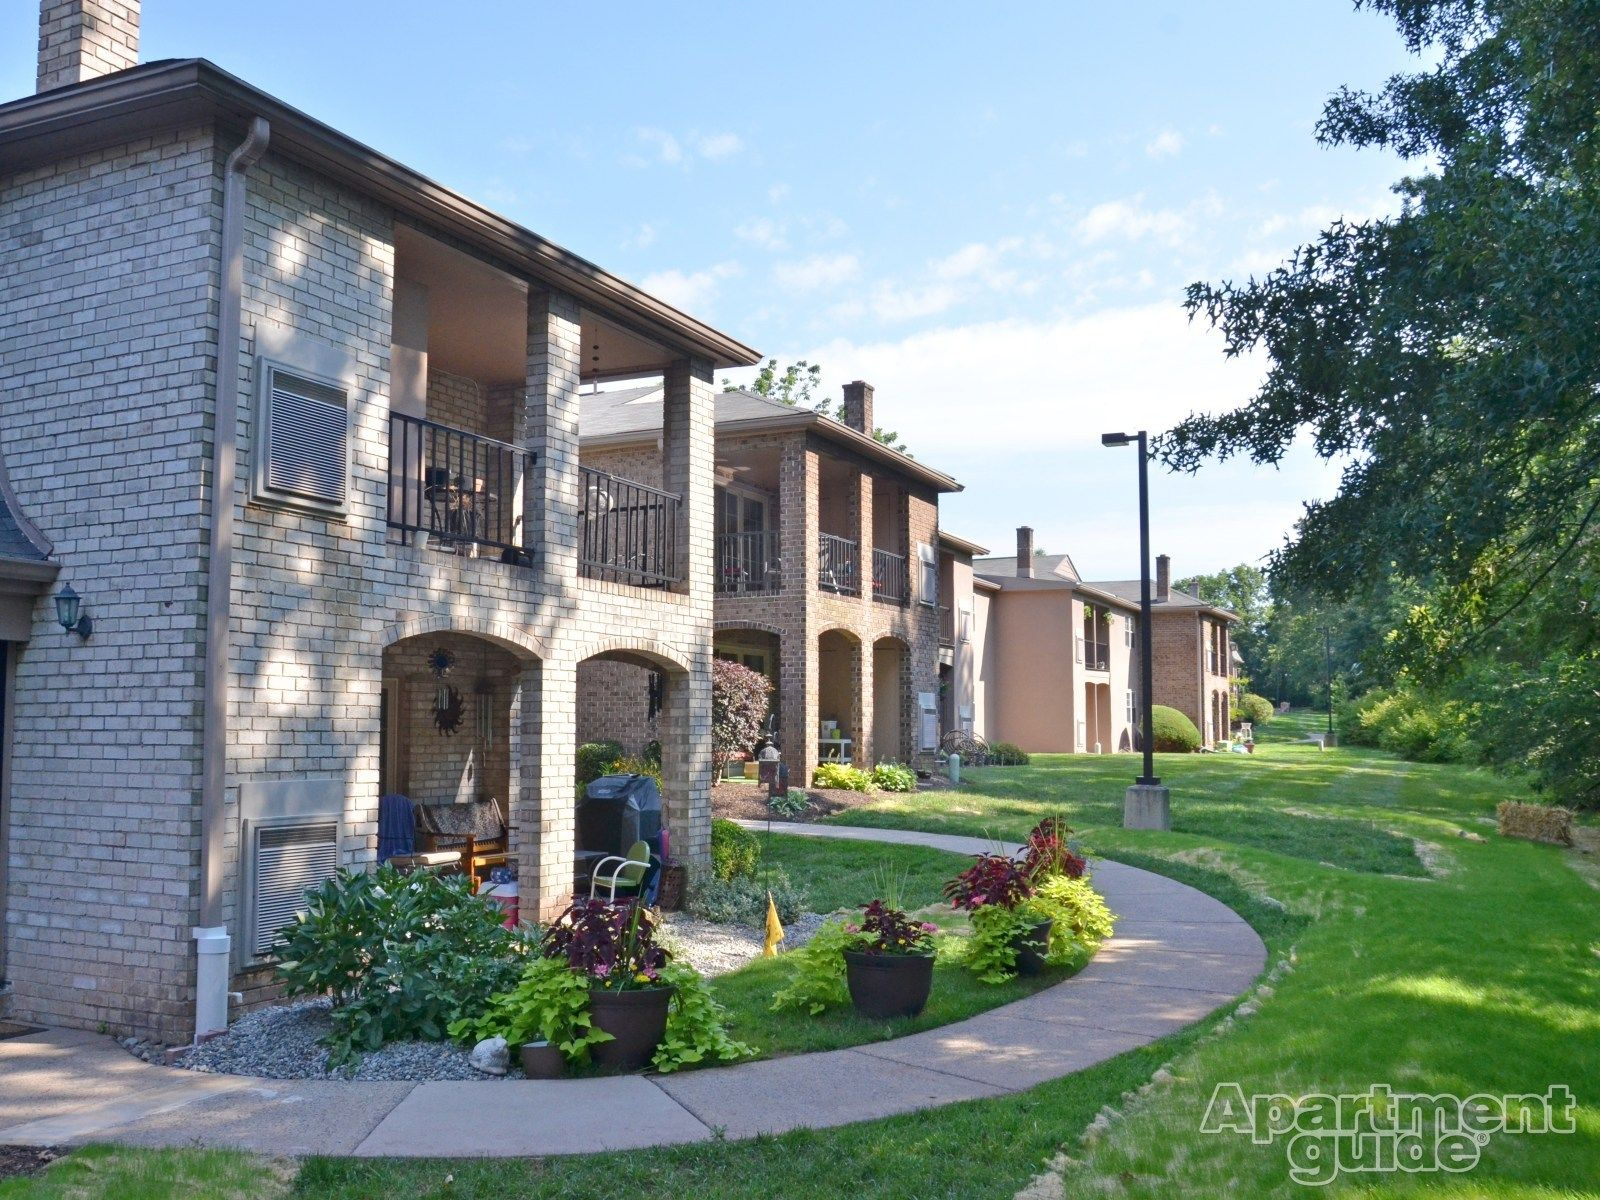 madison willowyck apartments lansdale pa apartments for